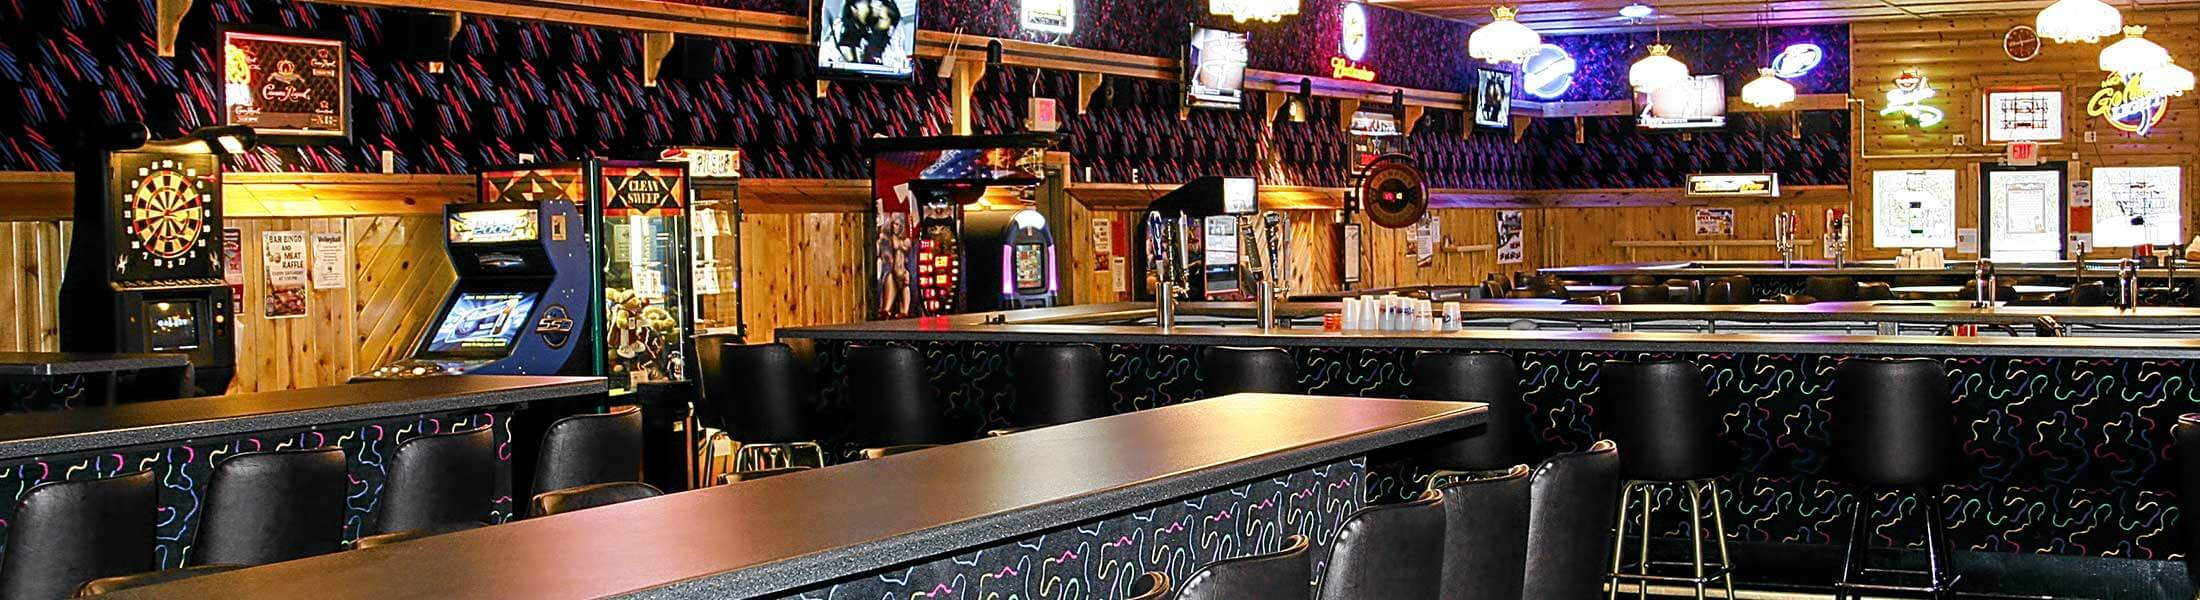 Horseshoe bar and high-top tables inside Main Gate Bar & Grill in Little Falls, MN